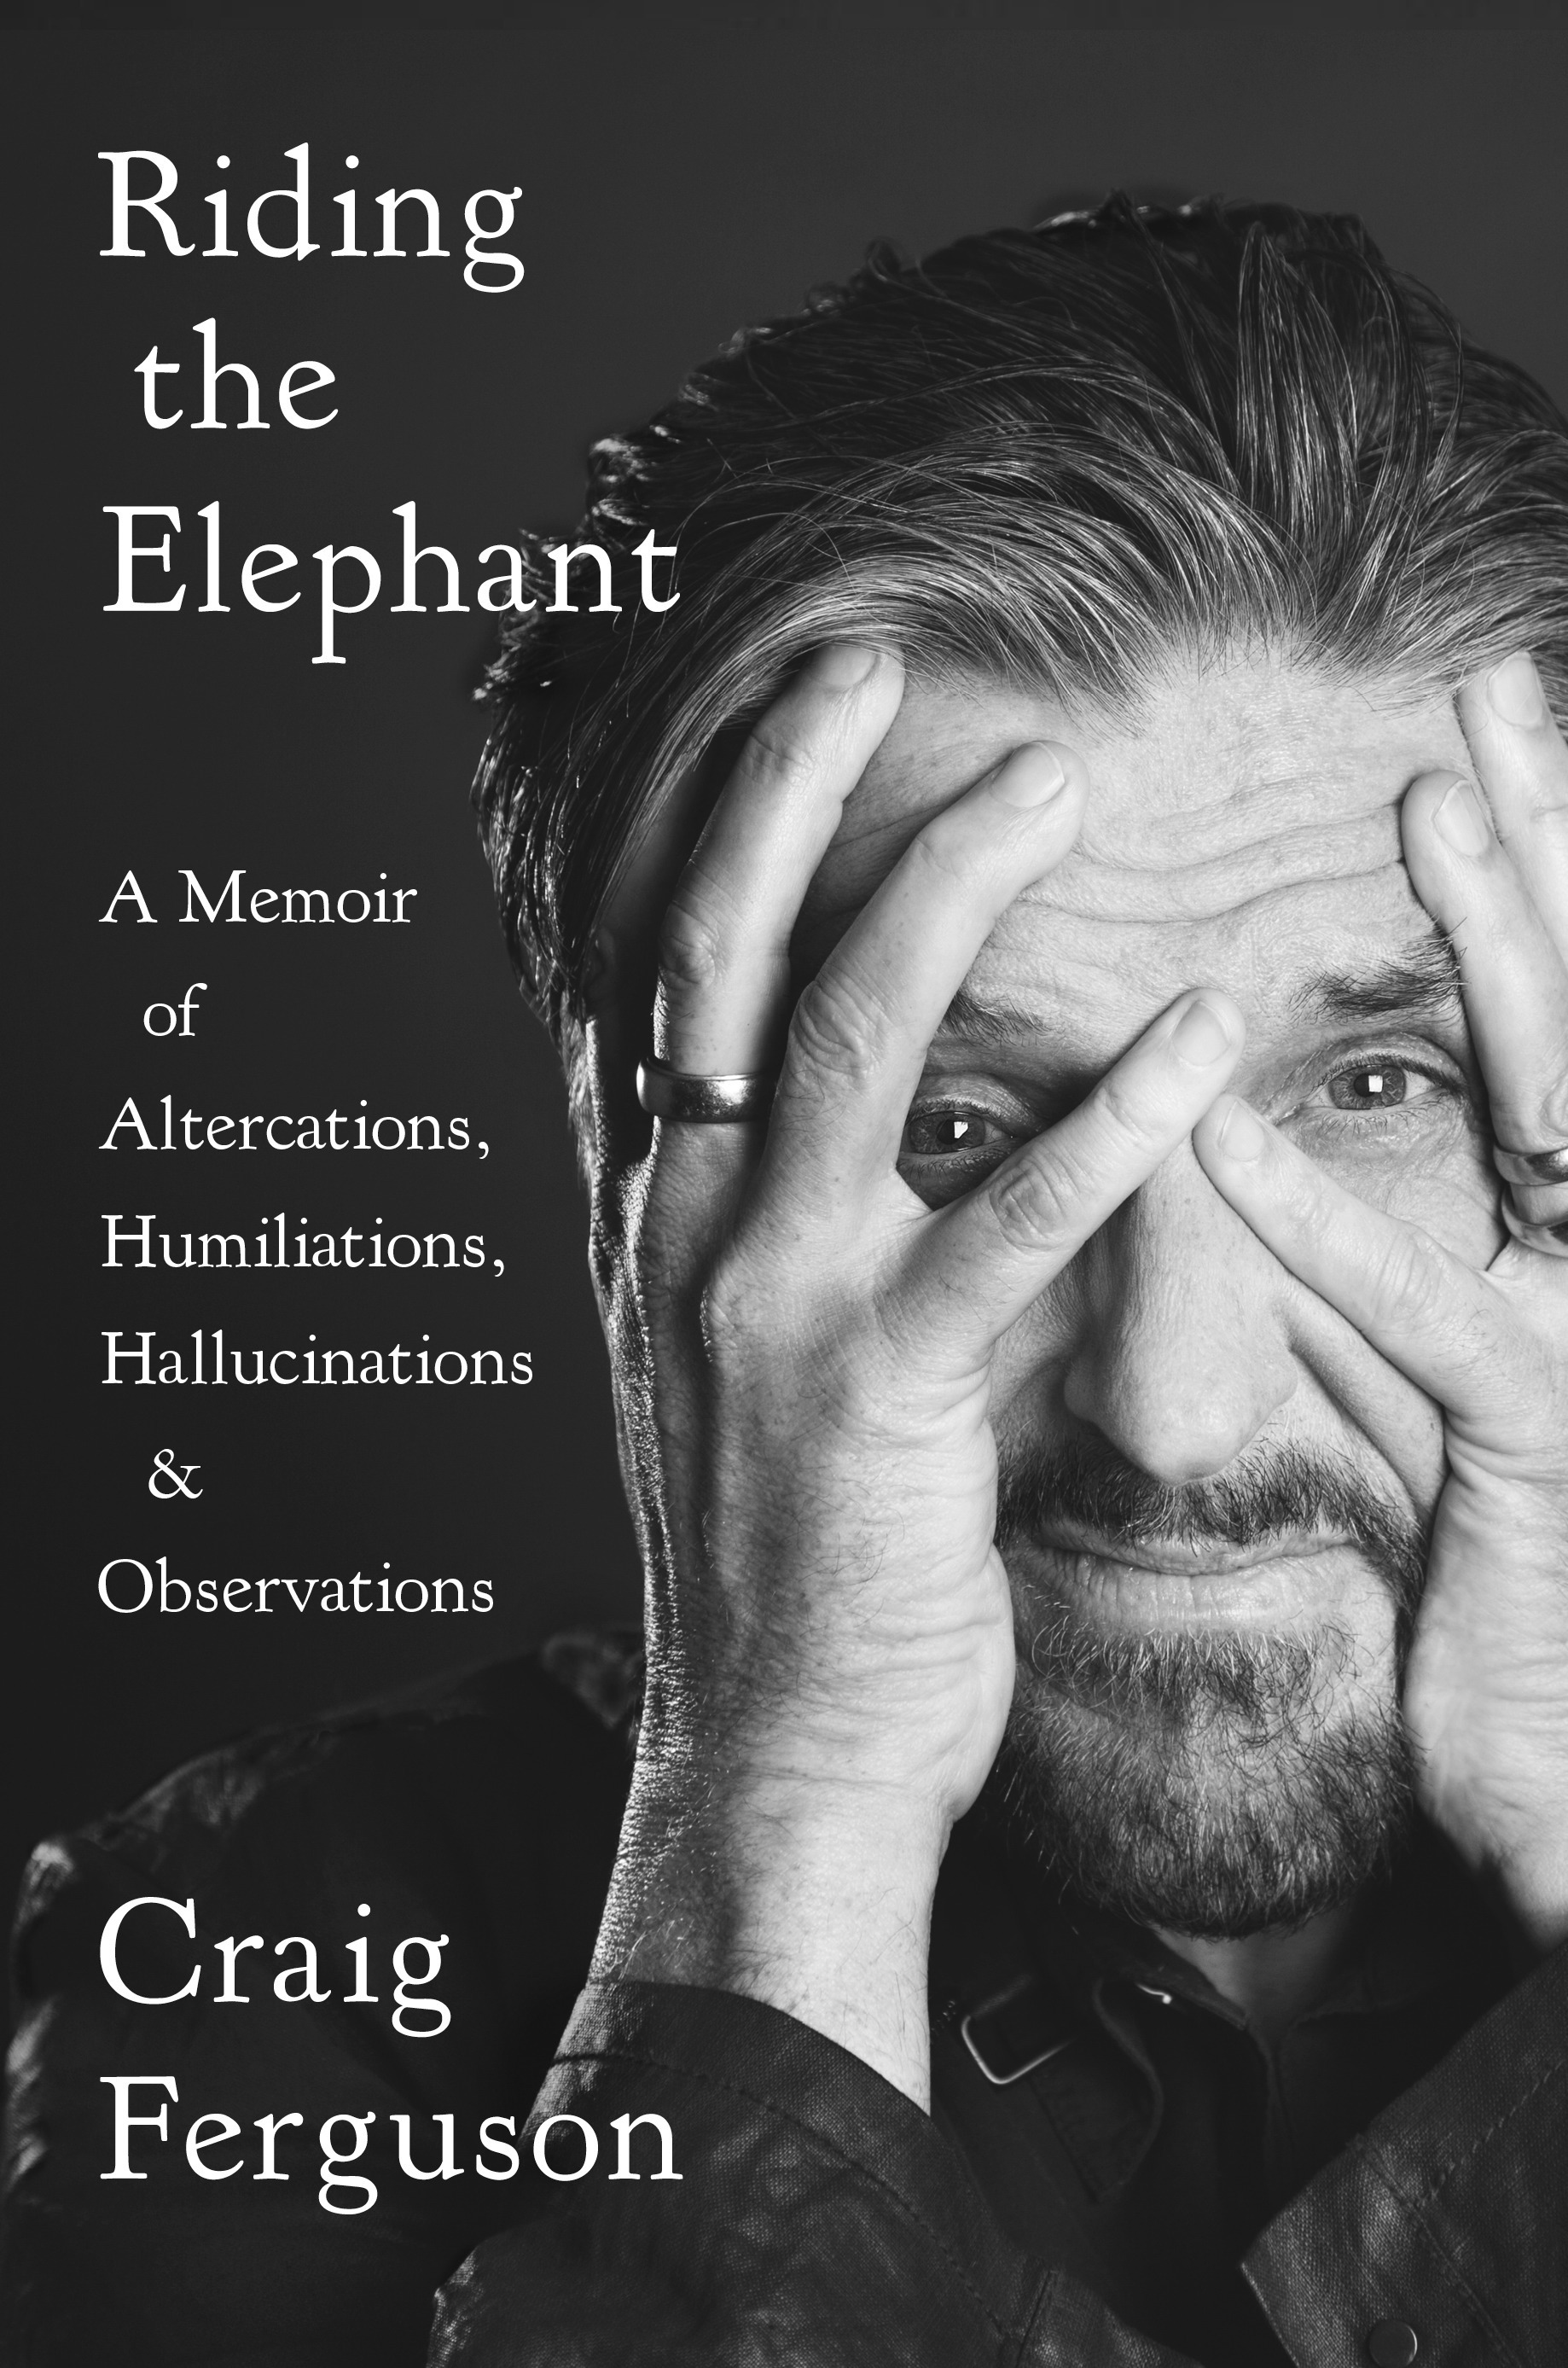 Riding the Elephant: A Memoir of Altercations, Humiliations, Hallucinations, and Observations